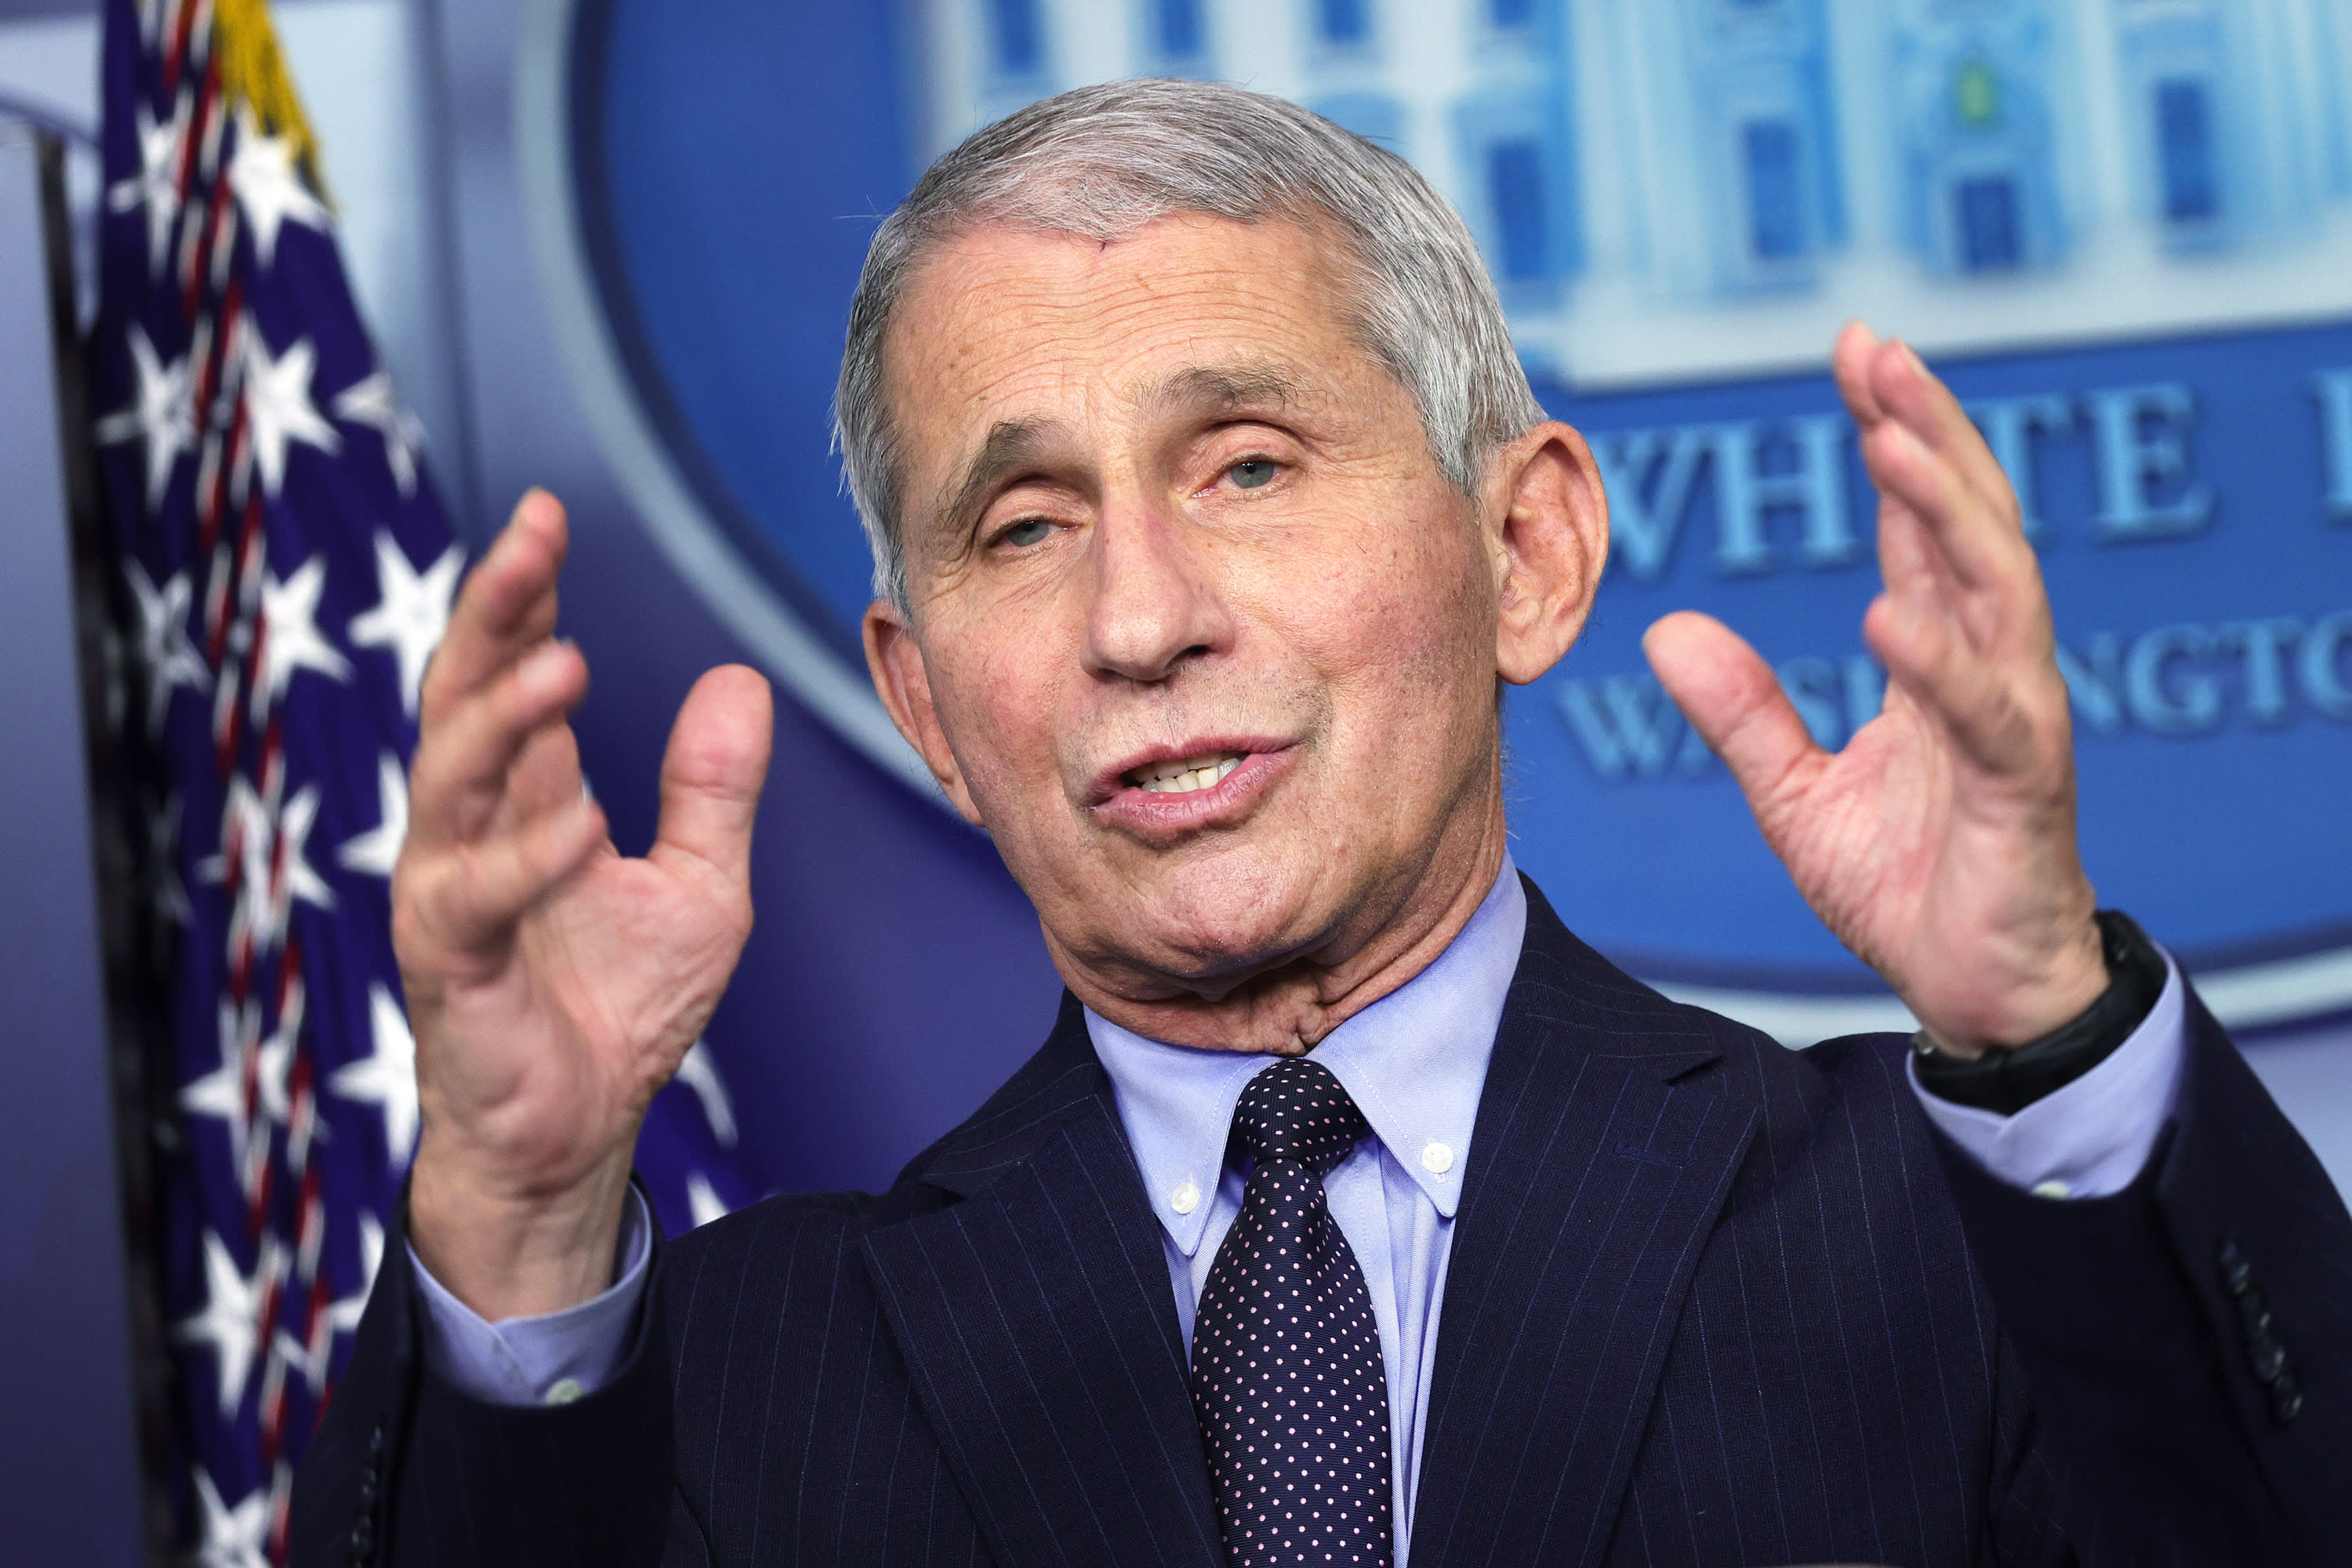 Dr. Fauci says new data suggests 'long' Covid symptoms can last up to 9 months